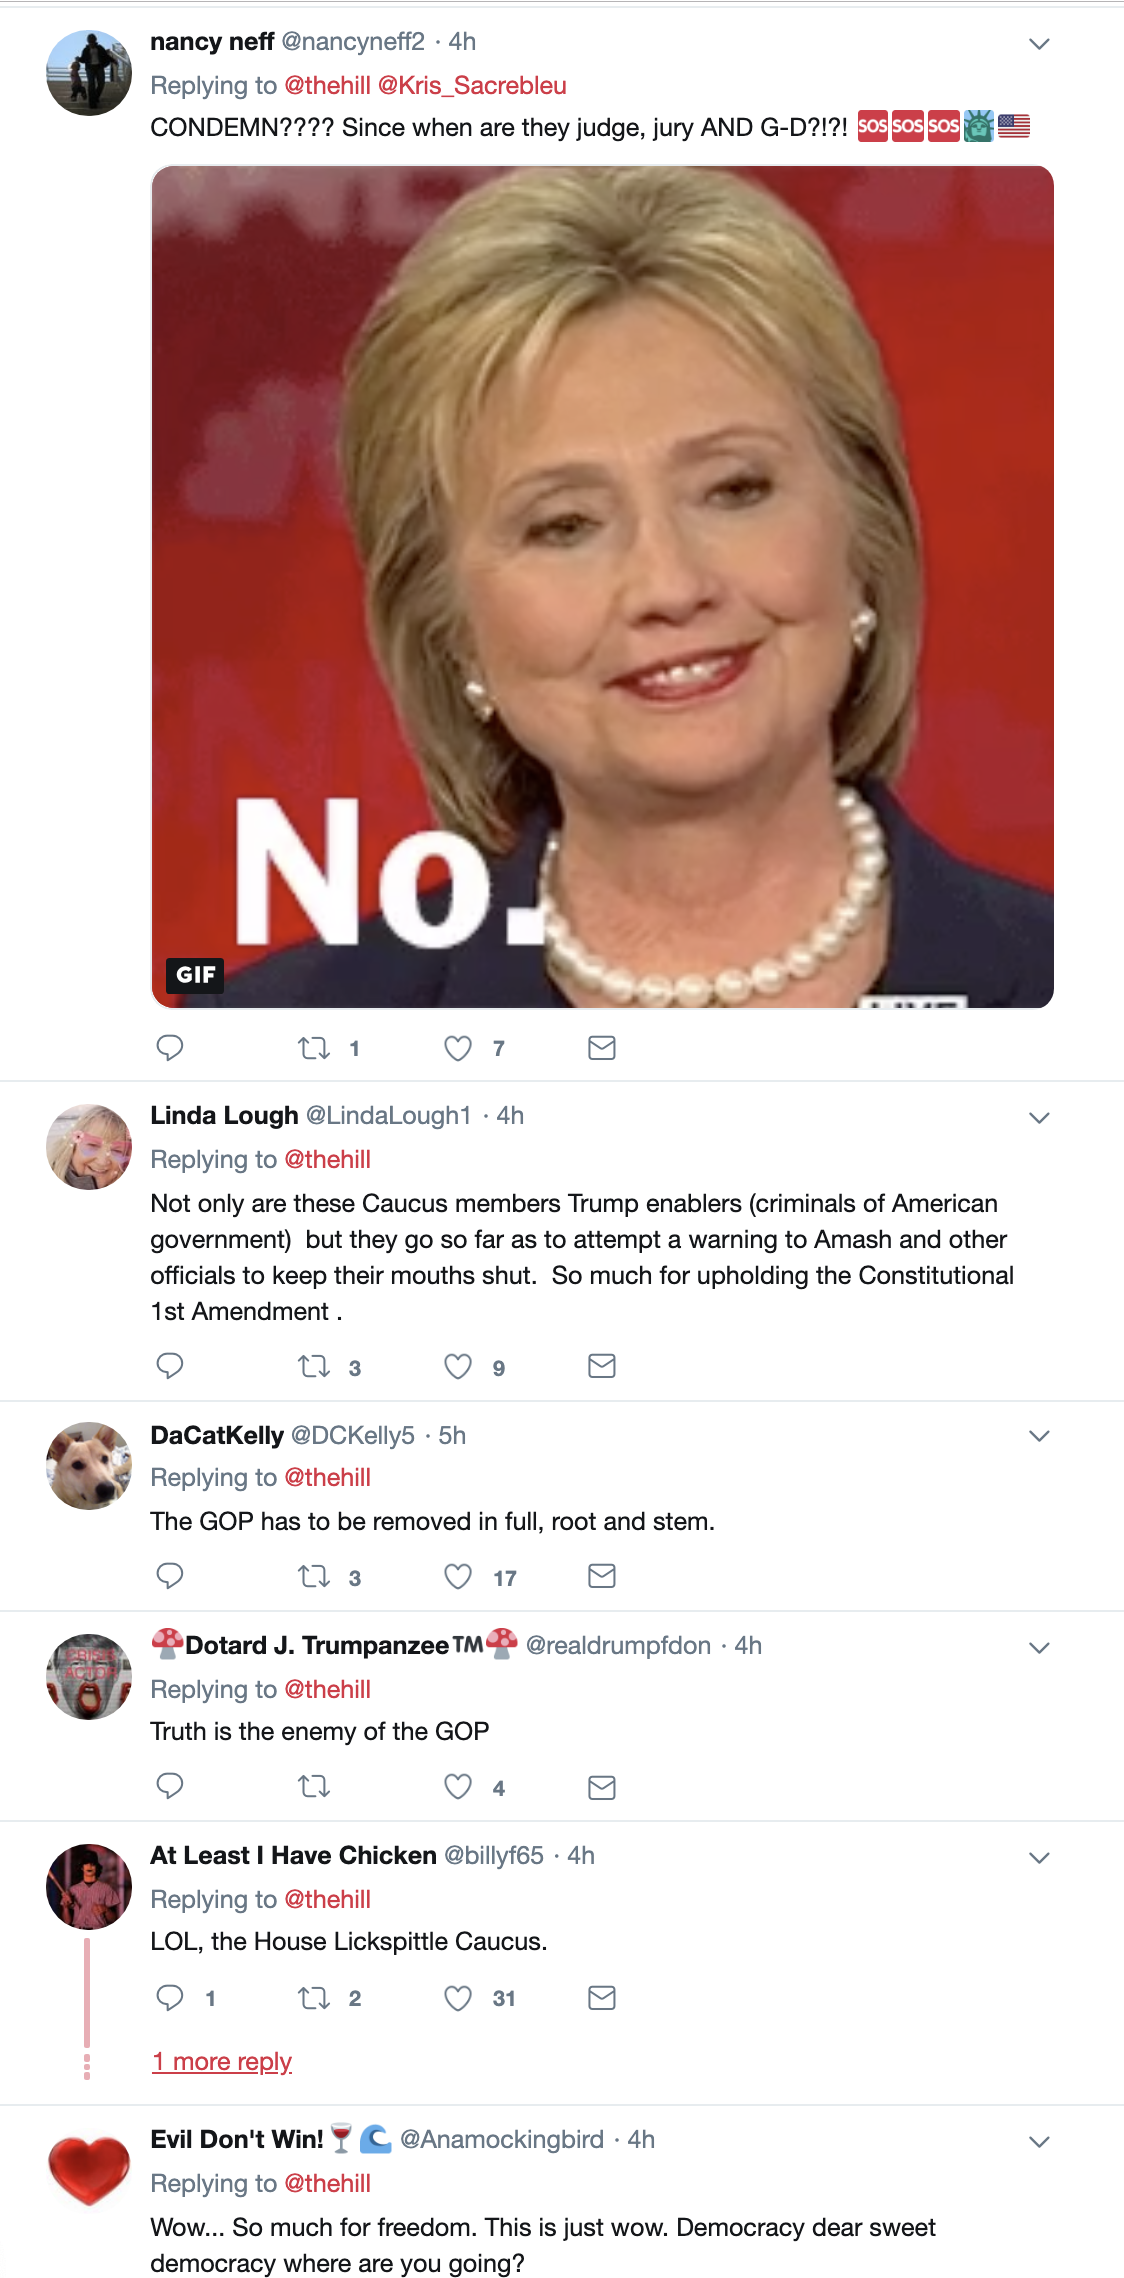 Screen-Shot-2019-05-21-at-11.52.11-AM Justin Amash Responds To Trump's Attacks On Him Like A Pro Corruption Crime Donald Trump Election 2016 Election 2020 Impeachment Investigation Mueller Politics Robert Mueller Russia Top Stories